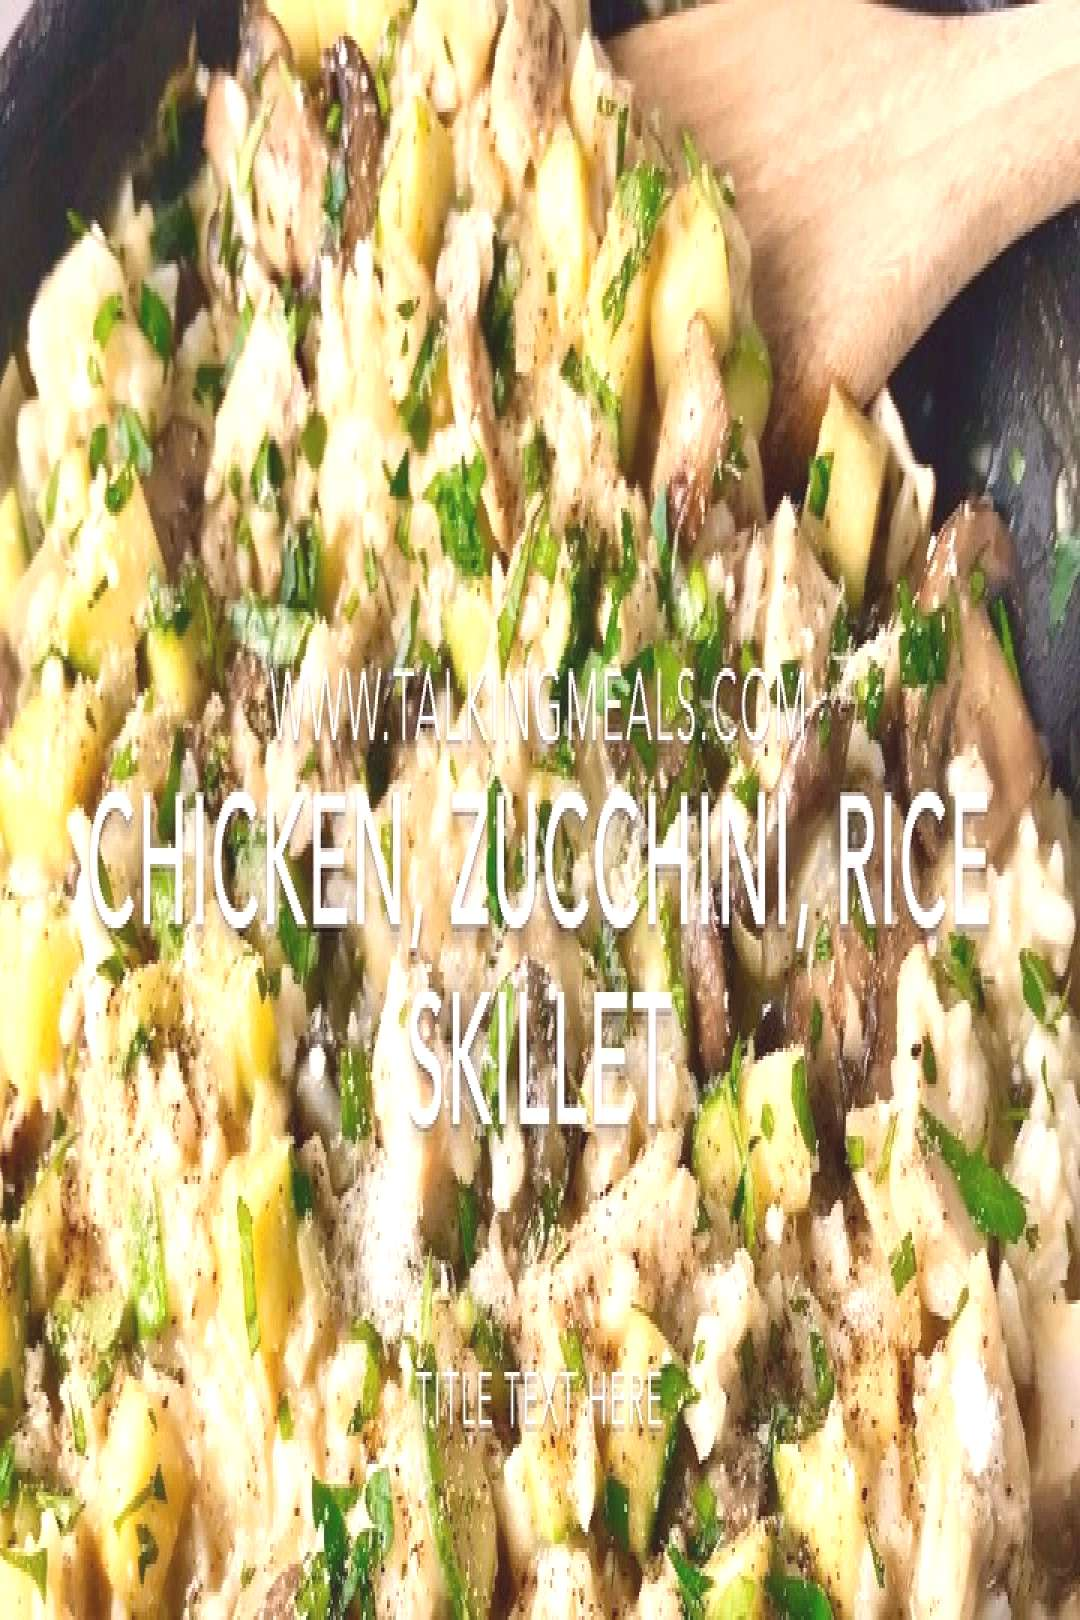 Need an EASY & YUMMY dinner? Zucchini and Chicken Rice Skillet it